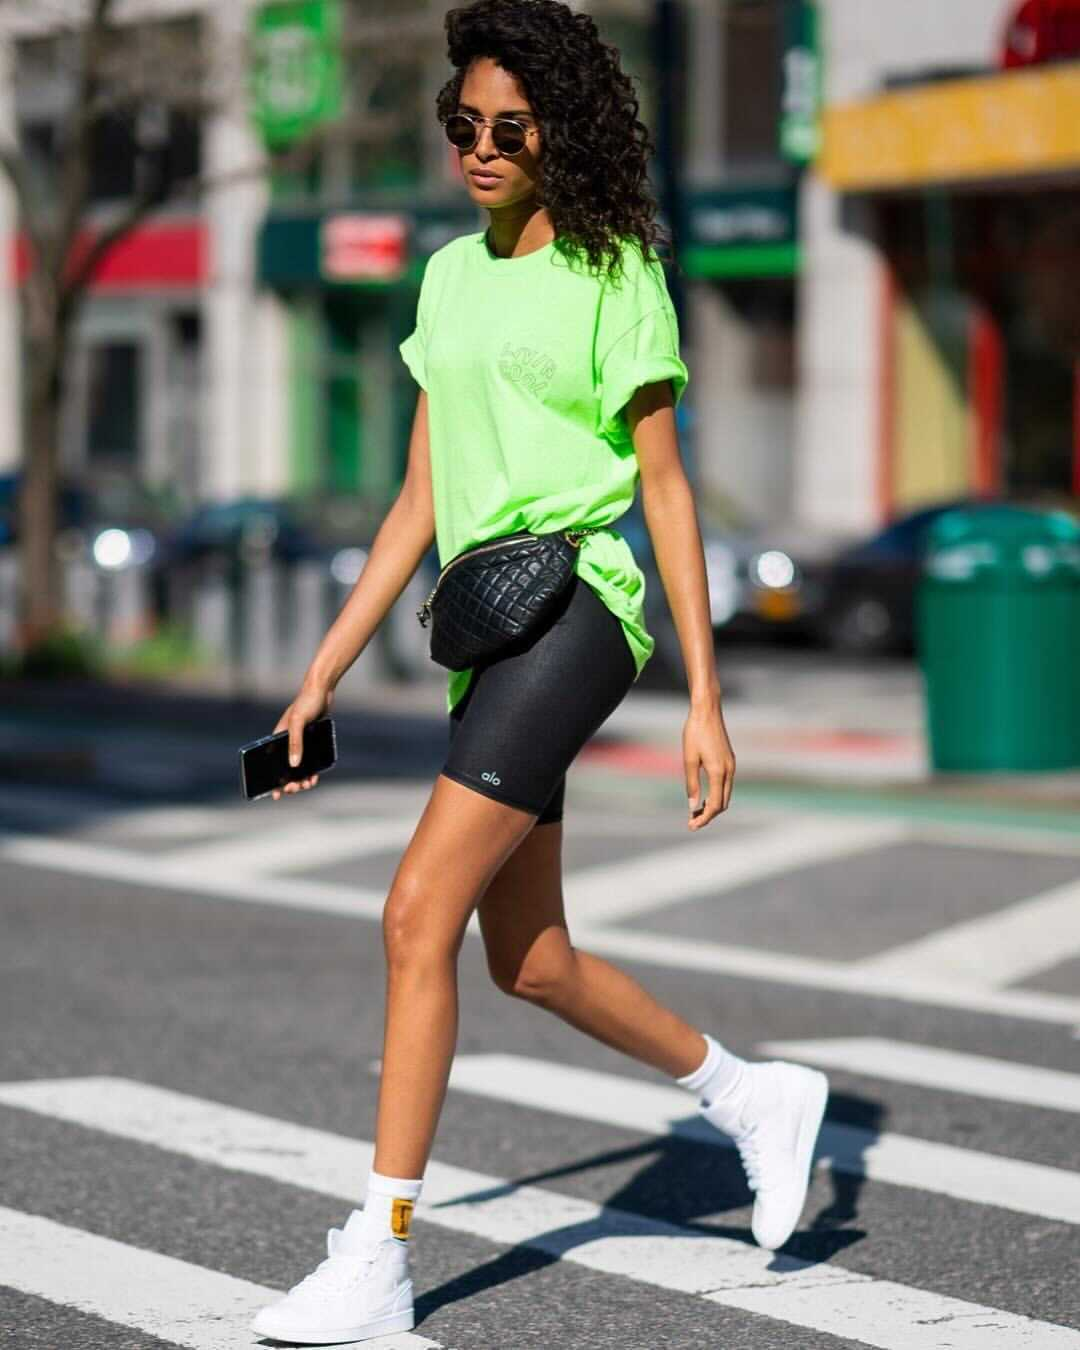 @cindybruna wearing an oversized neon green t-shirt with black biker shorts and a fanny pack while walking around the streets of New York.